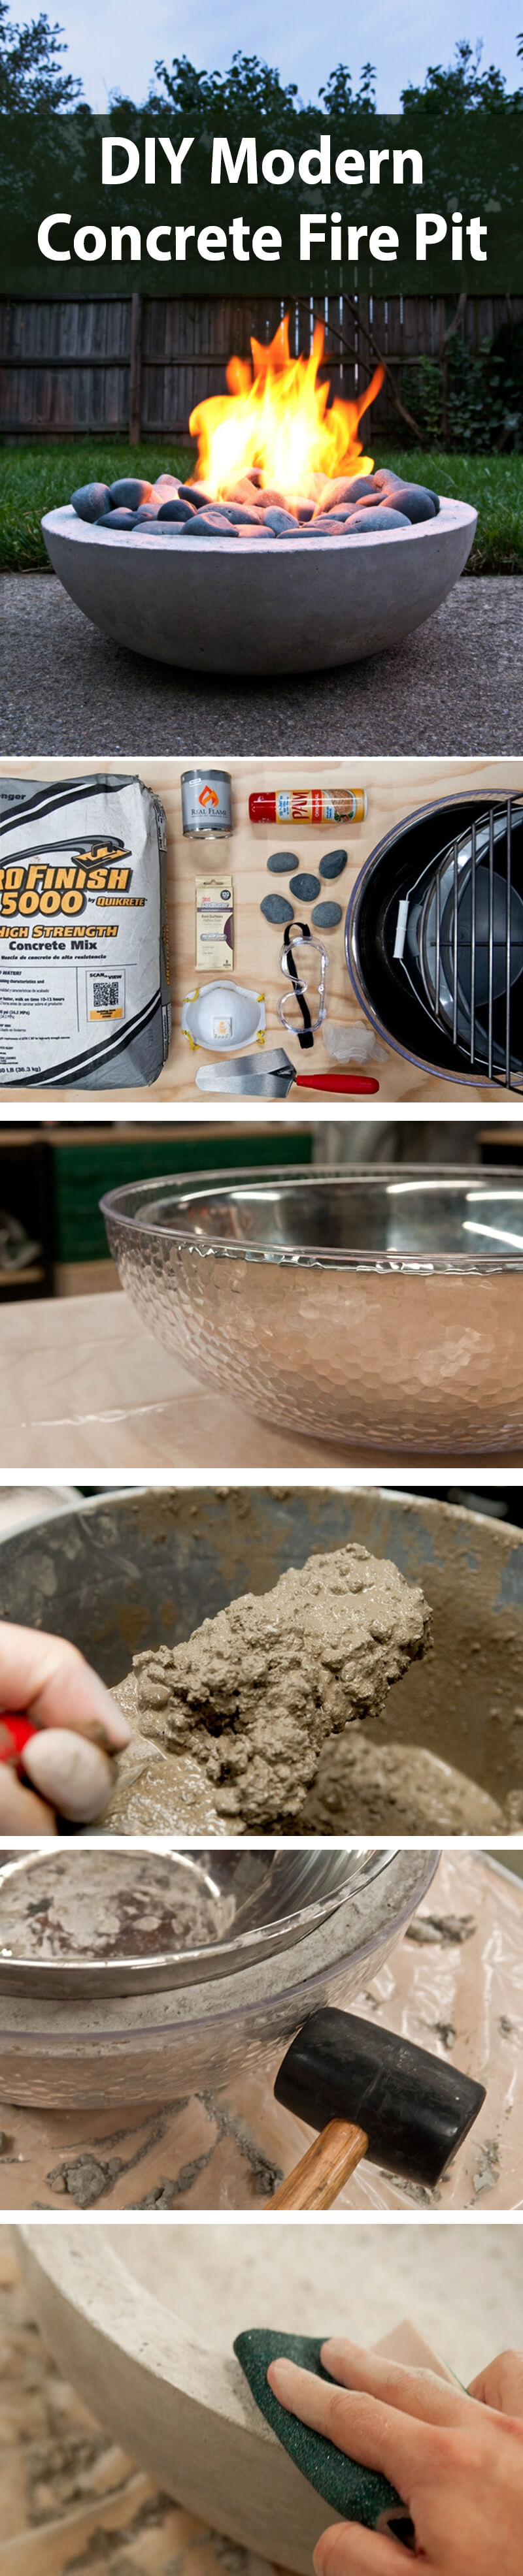 12 diy table top fire bowls ideas homebnc Top Result 50 Awesome Backyard Creations Fire Pit Picture 2018 Ojr7